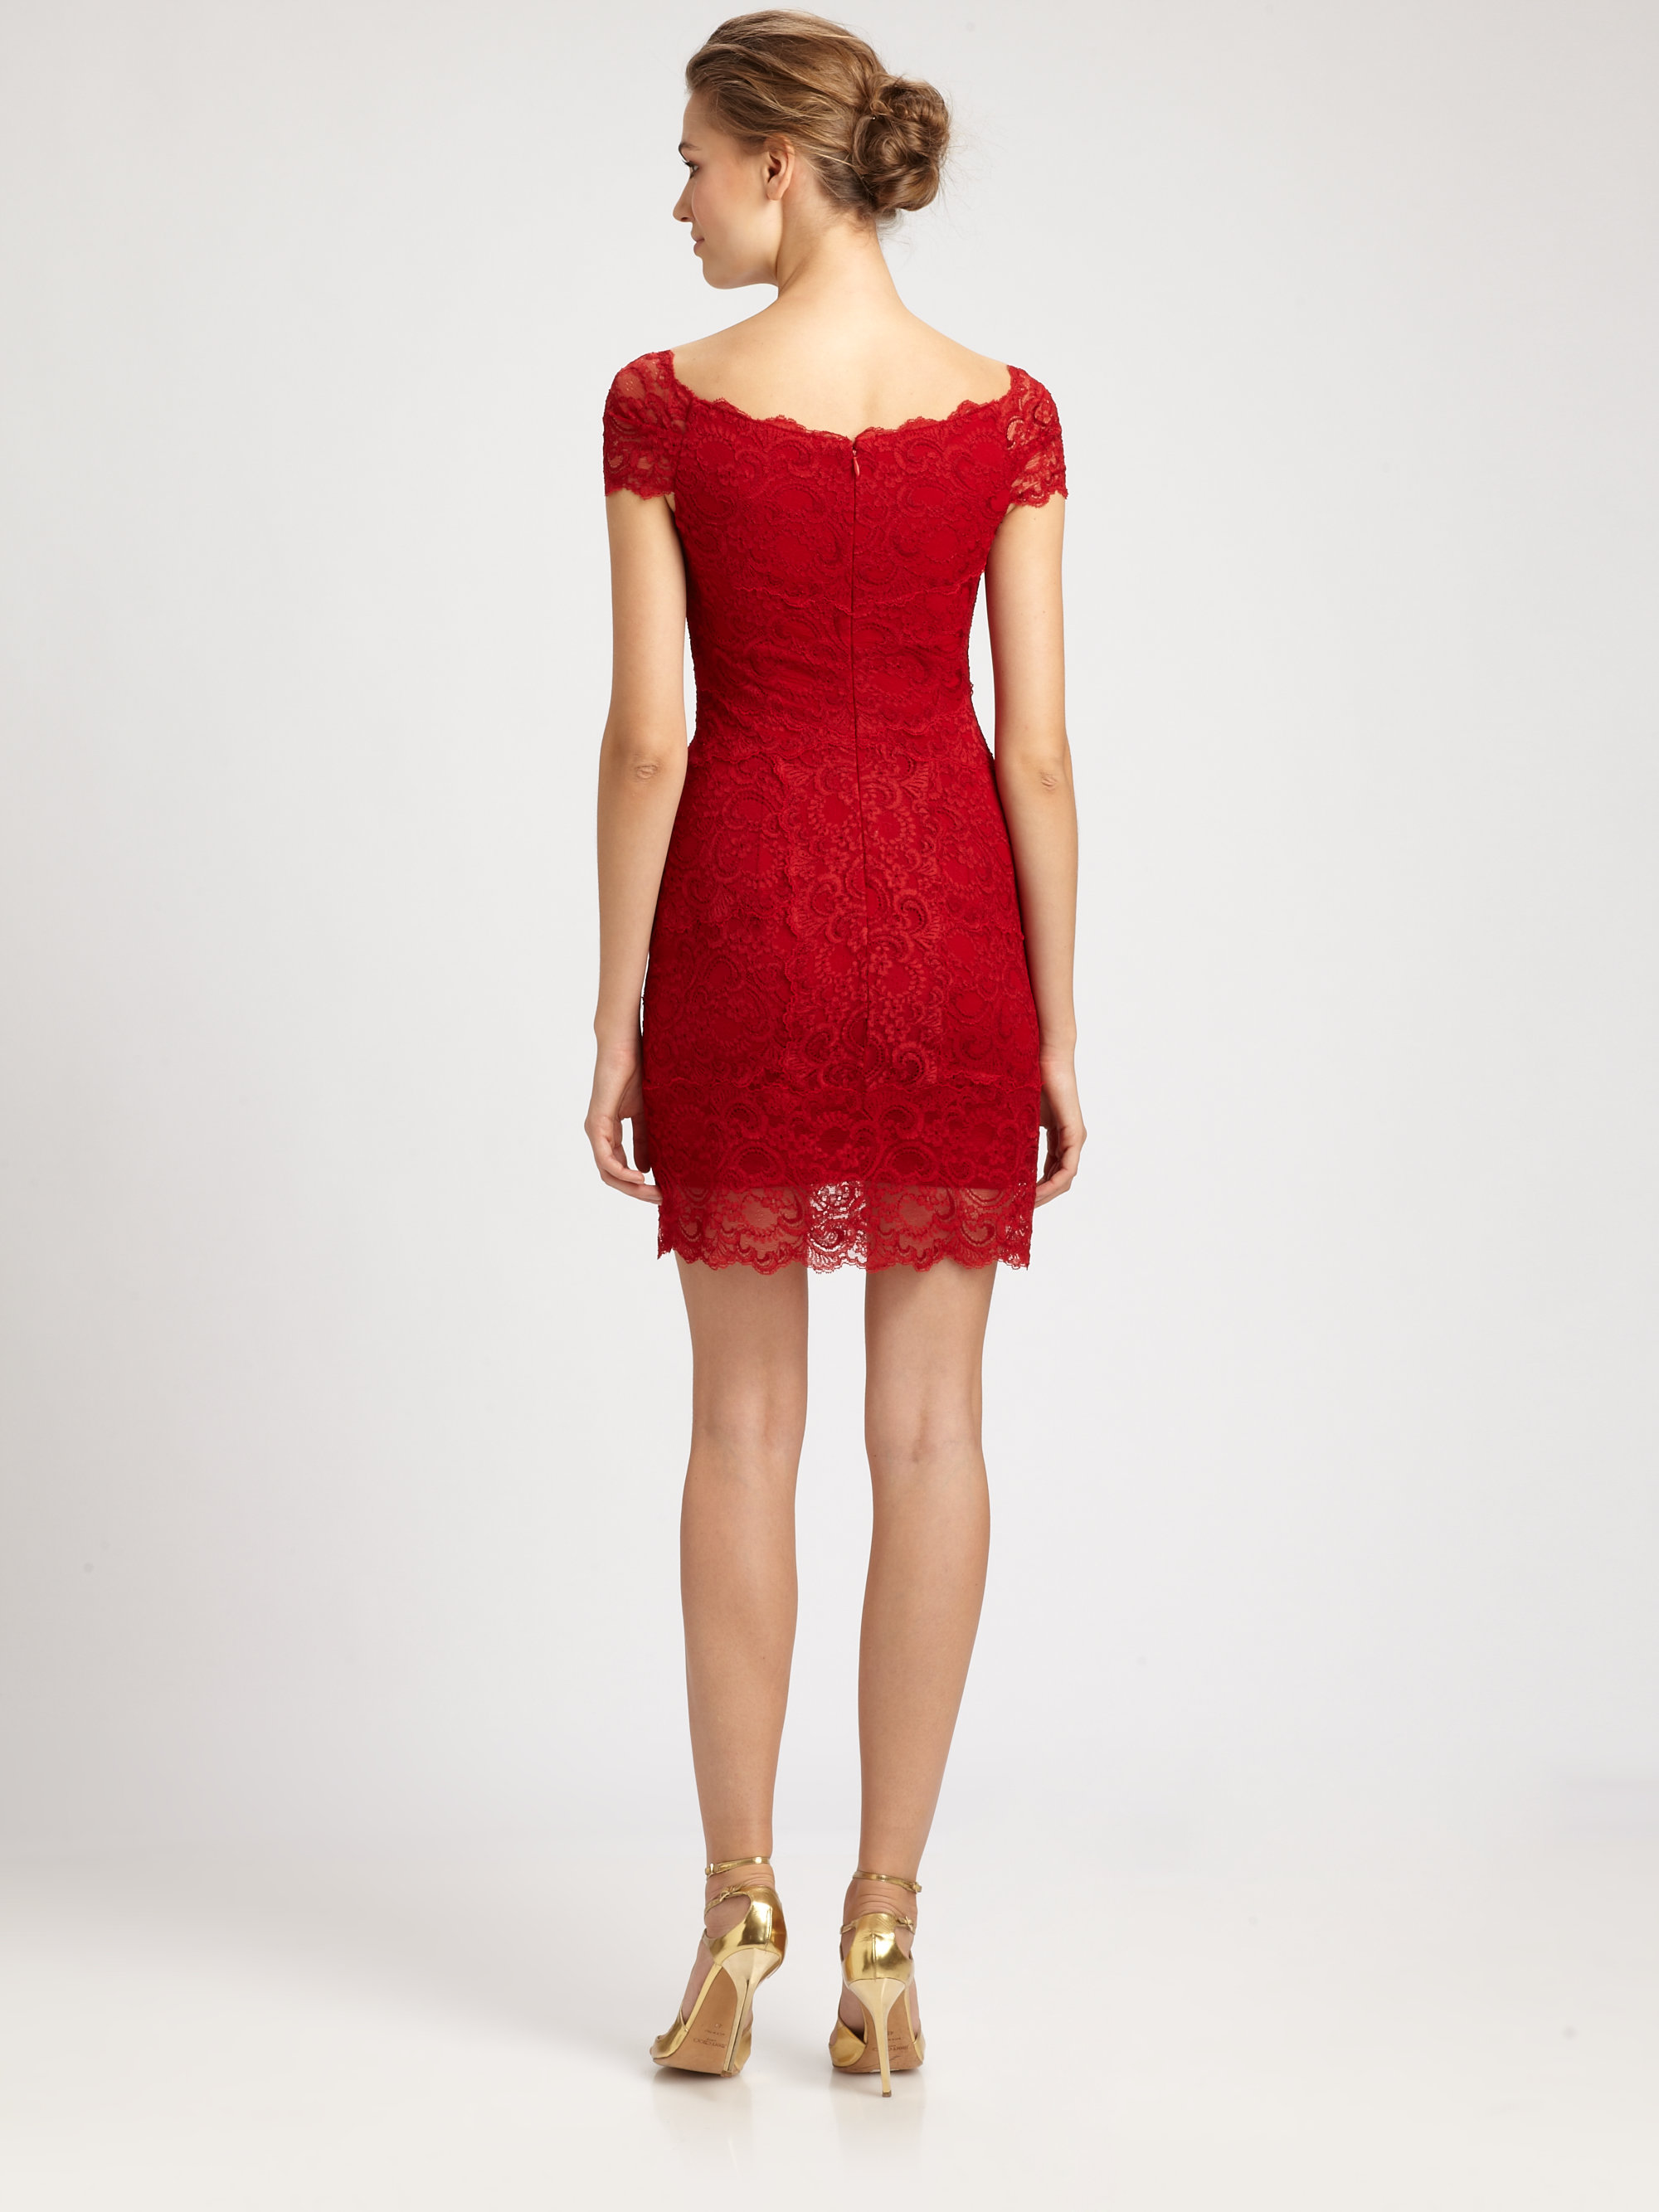 Nicole Miller Off Shoulder Lace Dress In Red Lyst